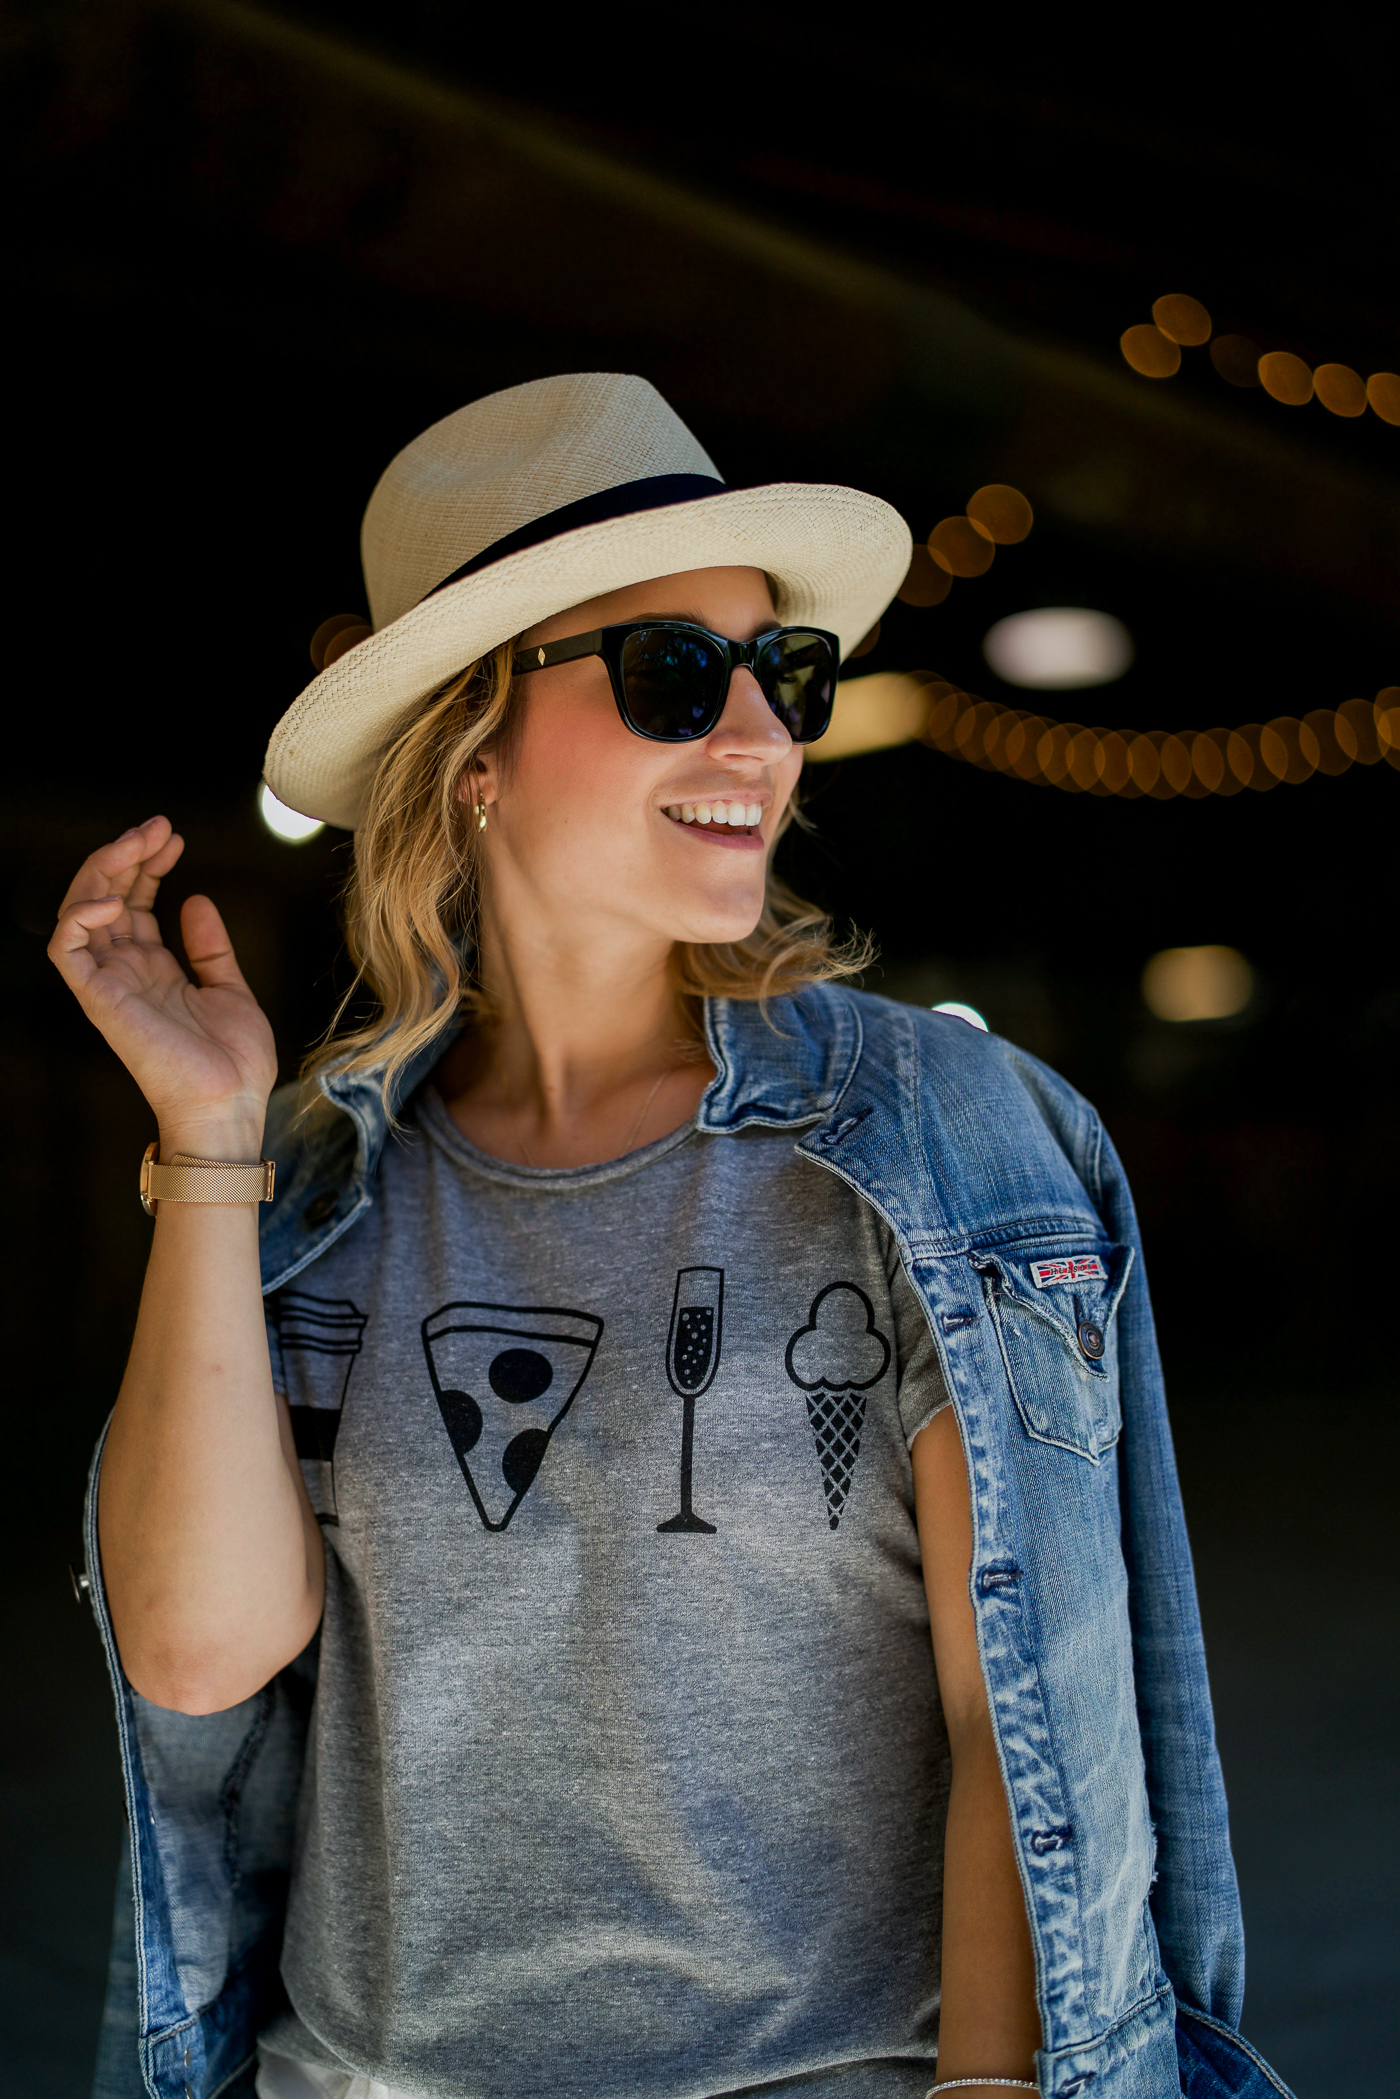 Canadian lifestyle and fashion blogger shares her secrets for how to wear a graphic tee like a fashion blogger - without looking like you're trying too hard